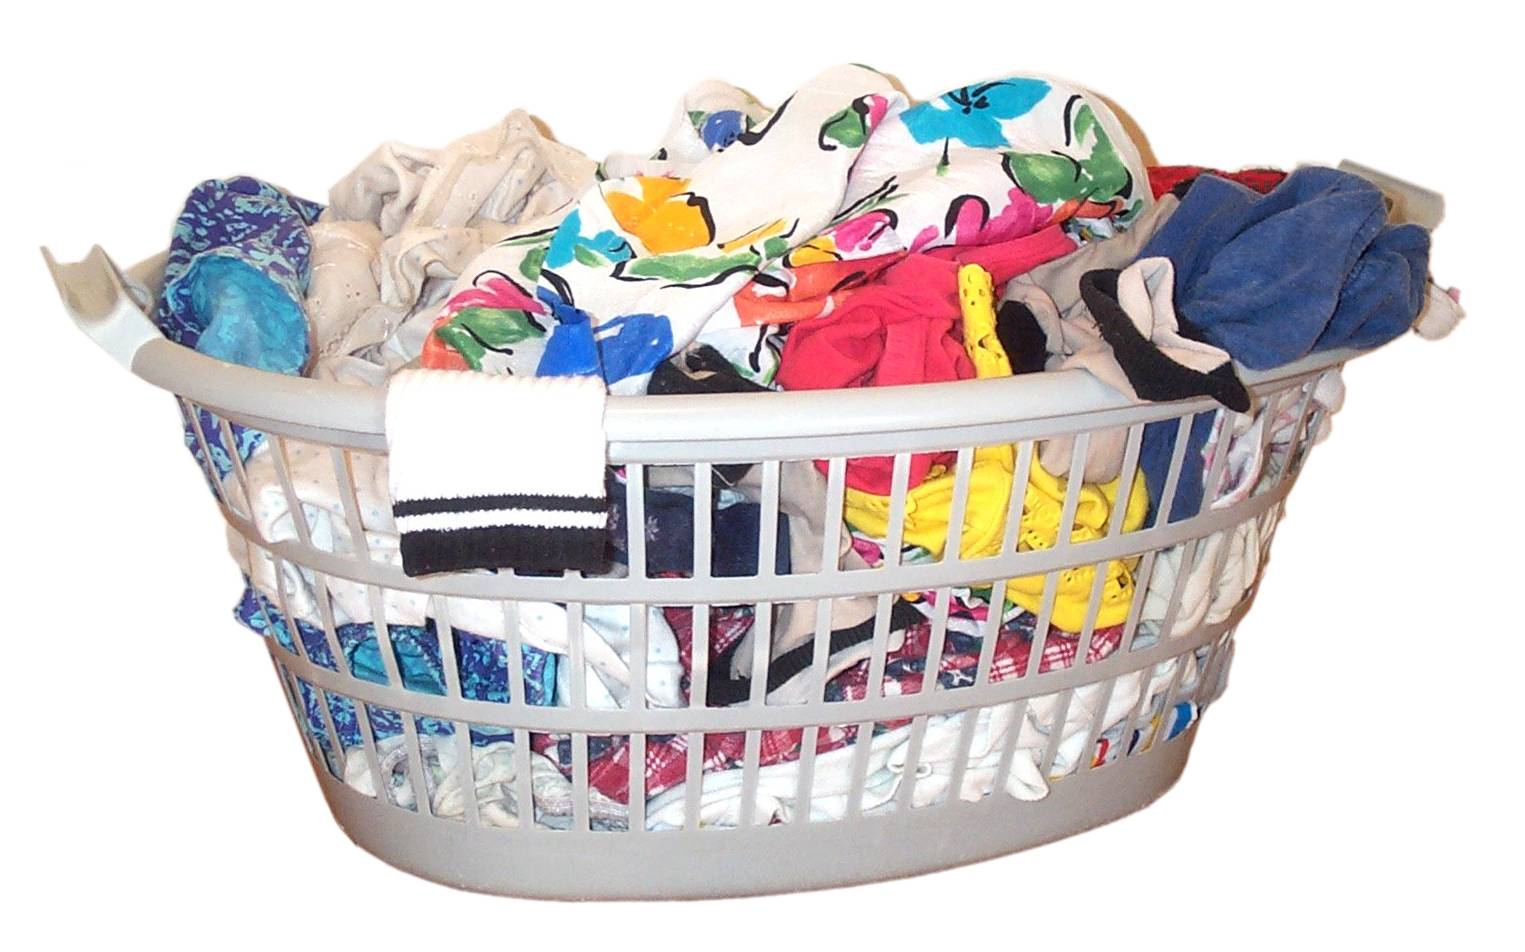 Clothes basket (full).jpg